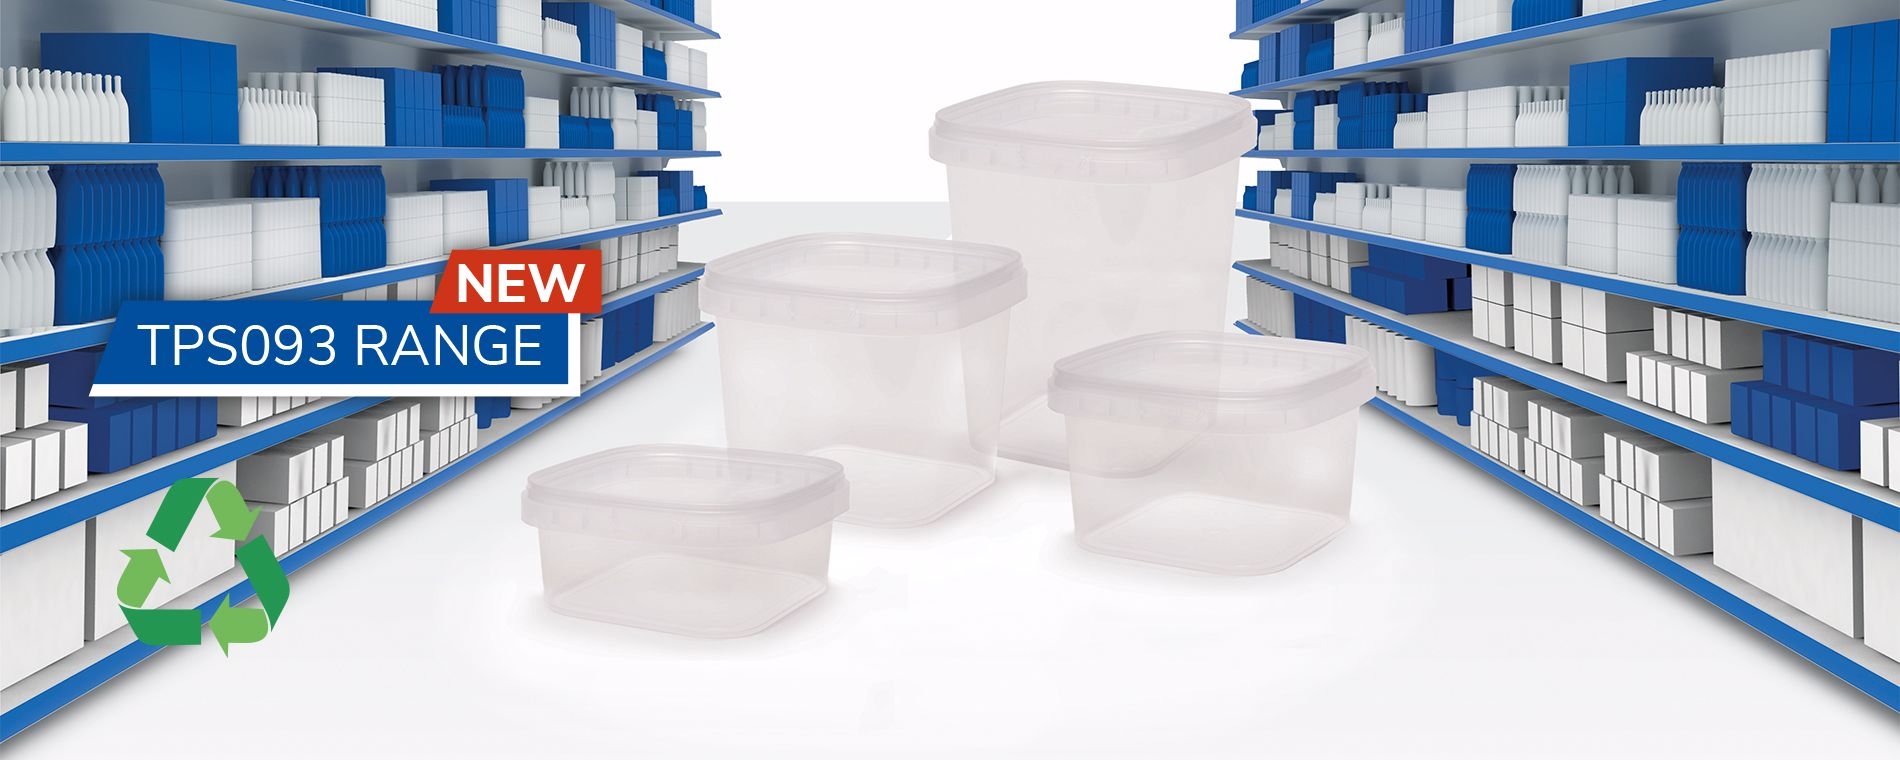 NEW: TPS093, tamper-proof square containers